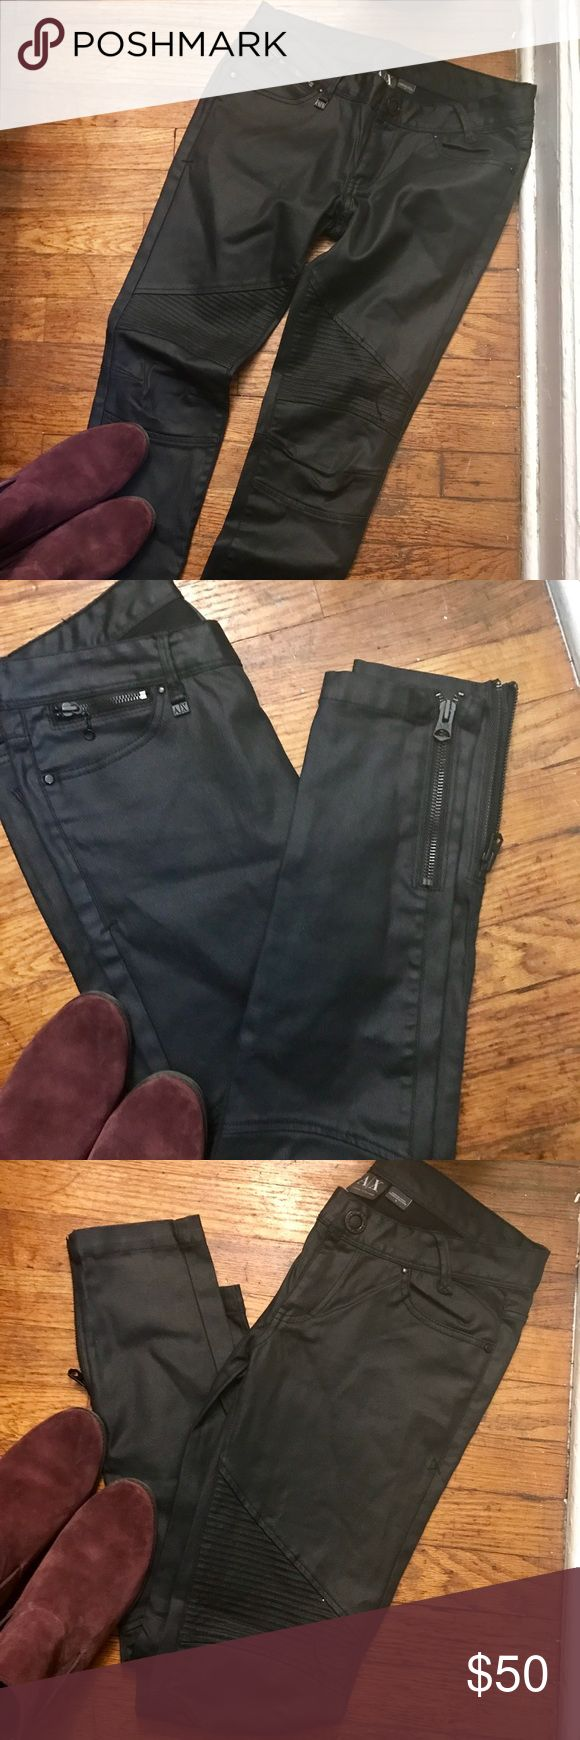 Armani Exchange coated black skinny jean! New Never Worn Armani Exchange coated black skinny jean with amazing ankle zippers! Detail at the knee that is amazing! Would look amazing with a white Tee and bib necklace !! Armani Exchange Jeans Skinny